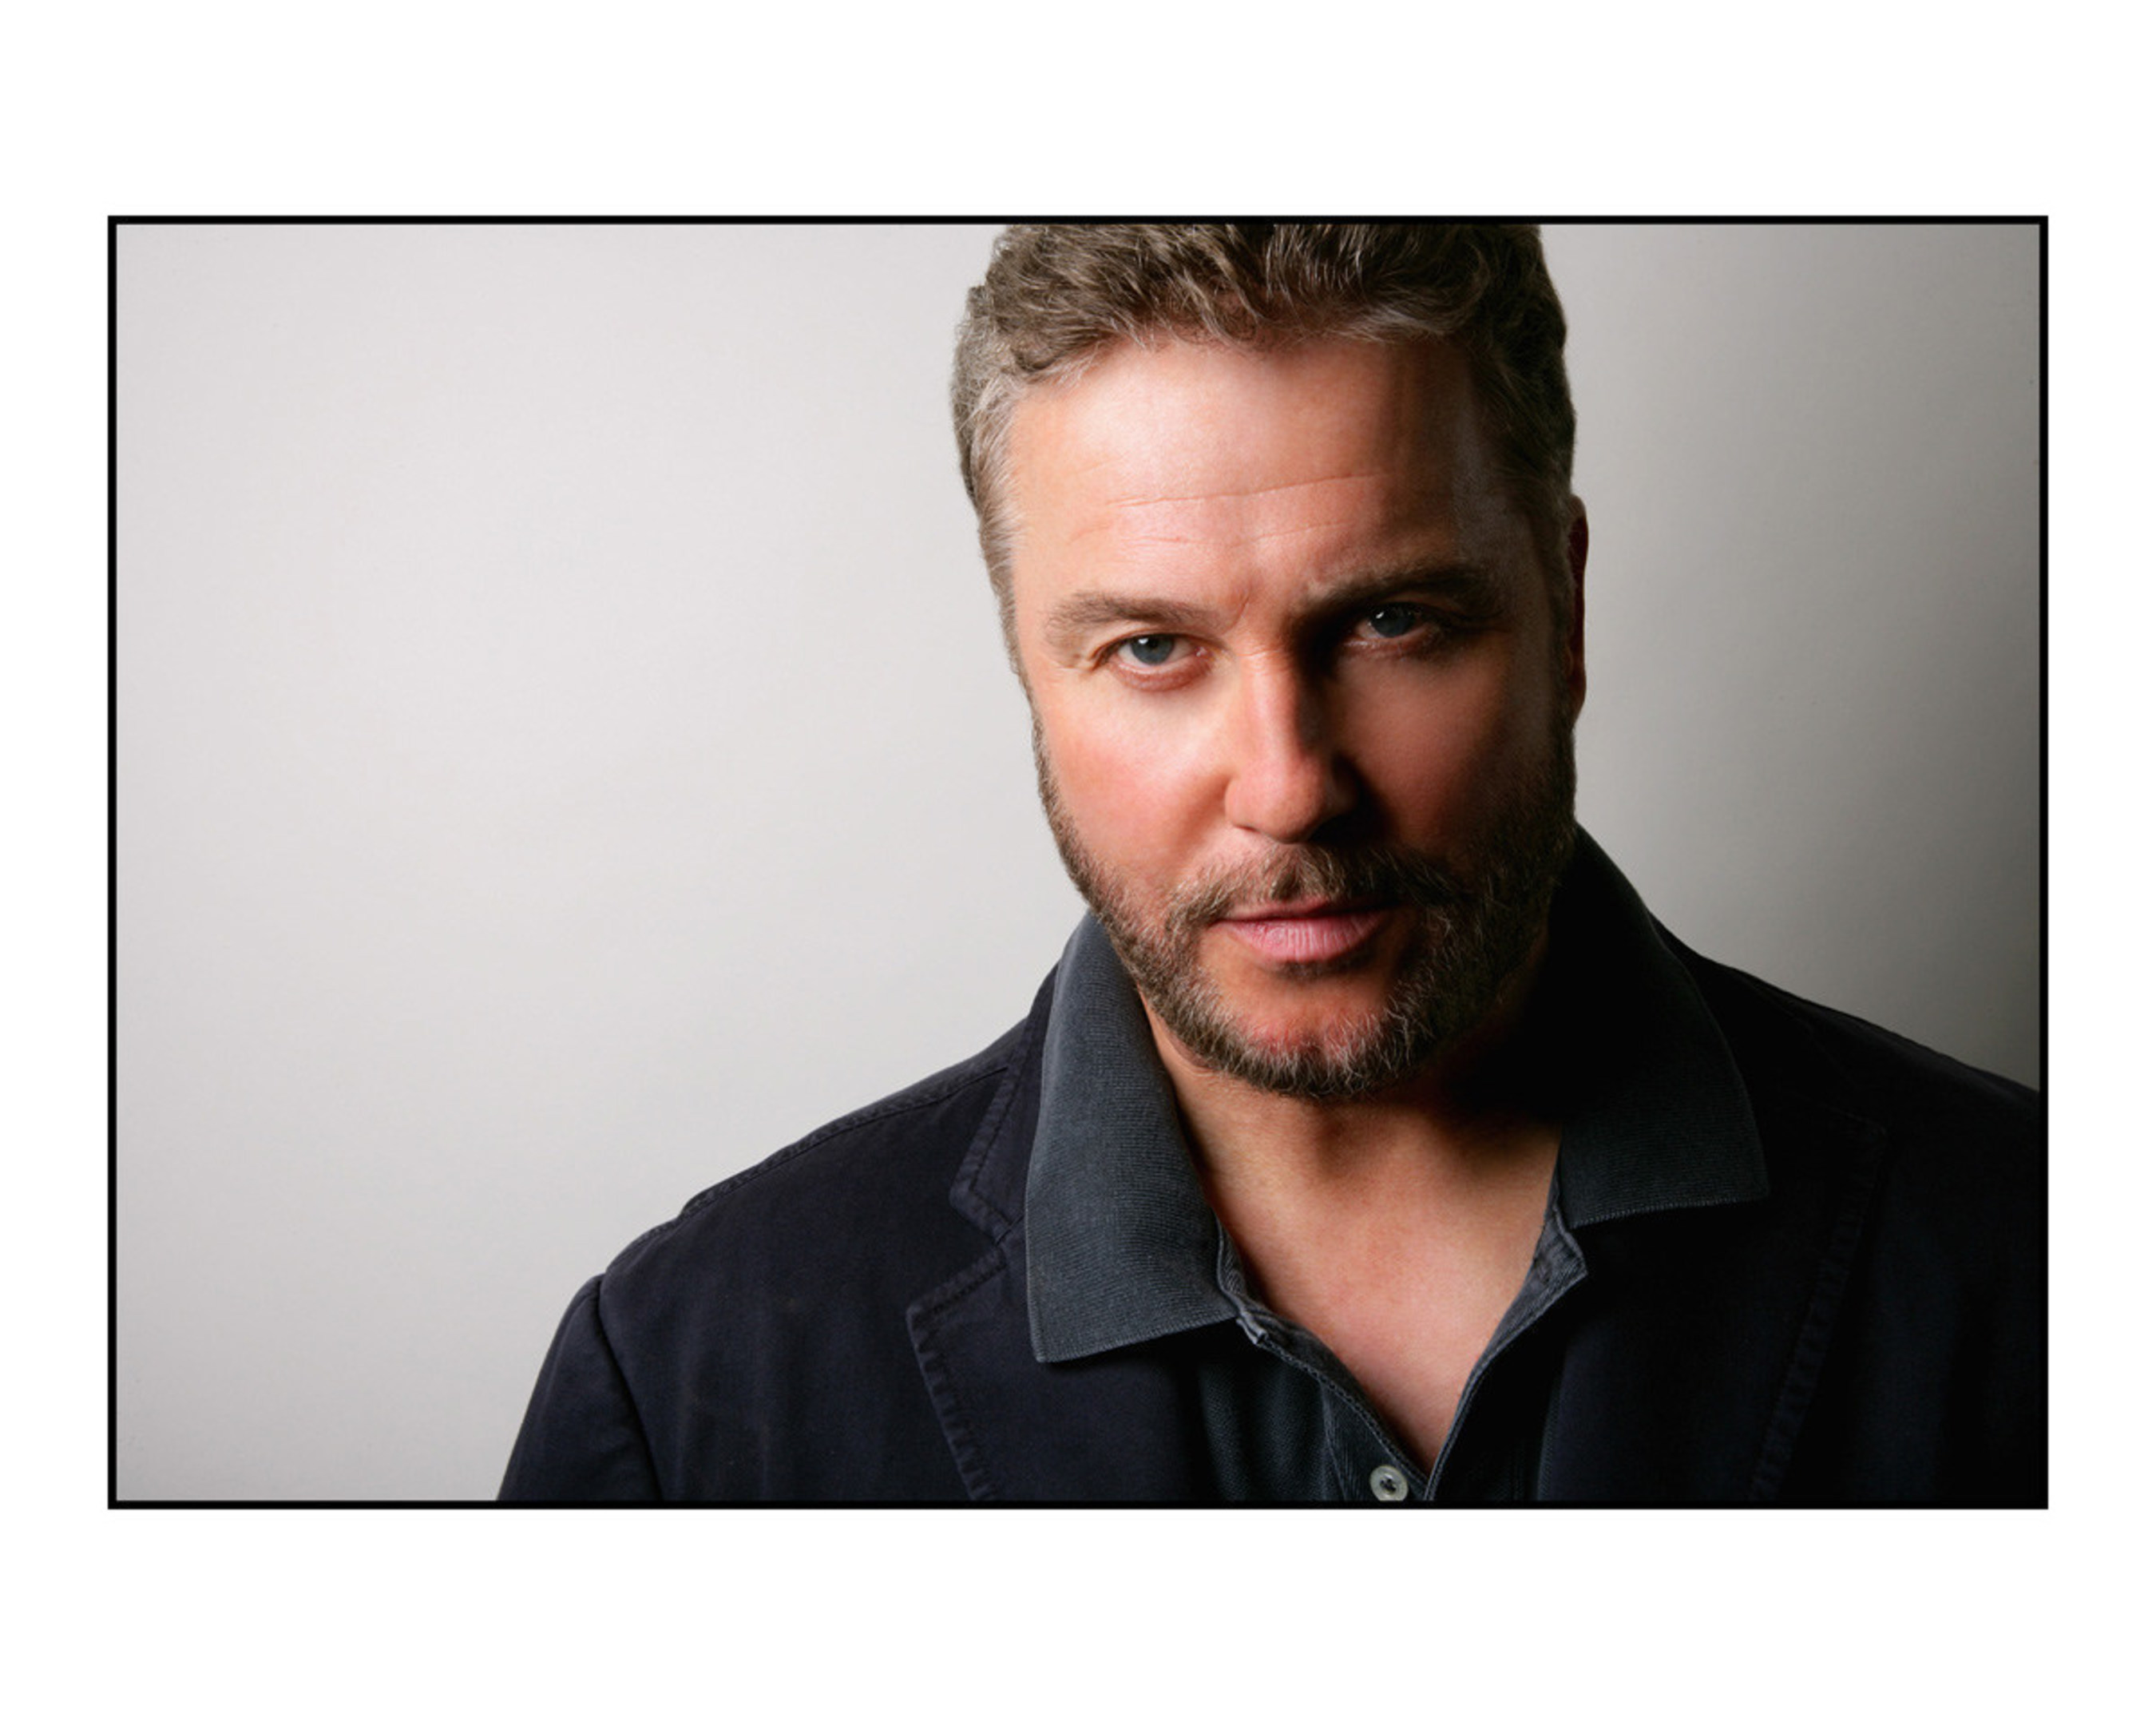 William Petersen Returns To Television In WGN America's Critically Acclaimed Series 'Manhattan,' Produced By Lionsgate, Skydance And Tribune Studios